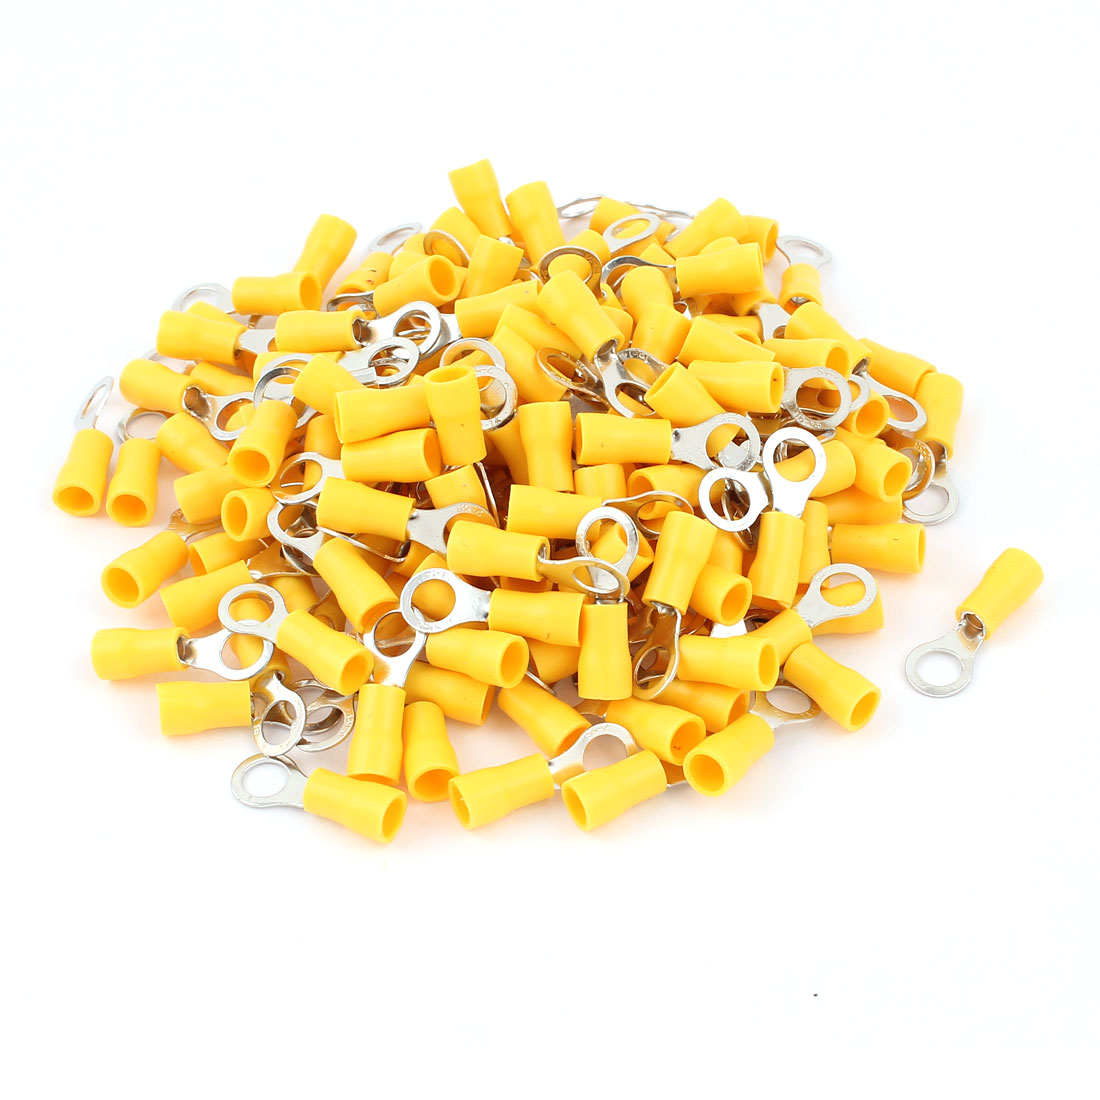 160pcs RVS2-5 Yellow Plastic Sleeve Pre Insulated Ring Terminals Connector for AWG 16-14 Wire